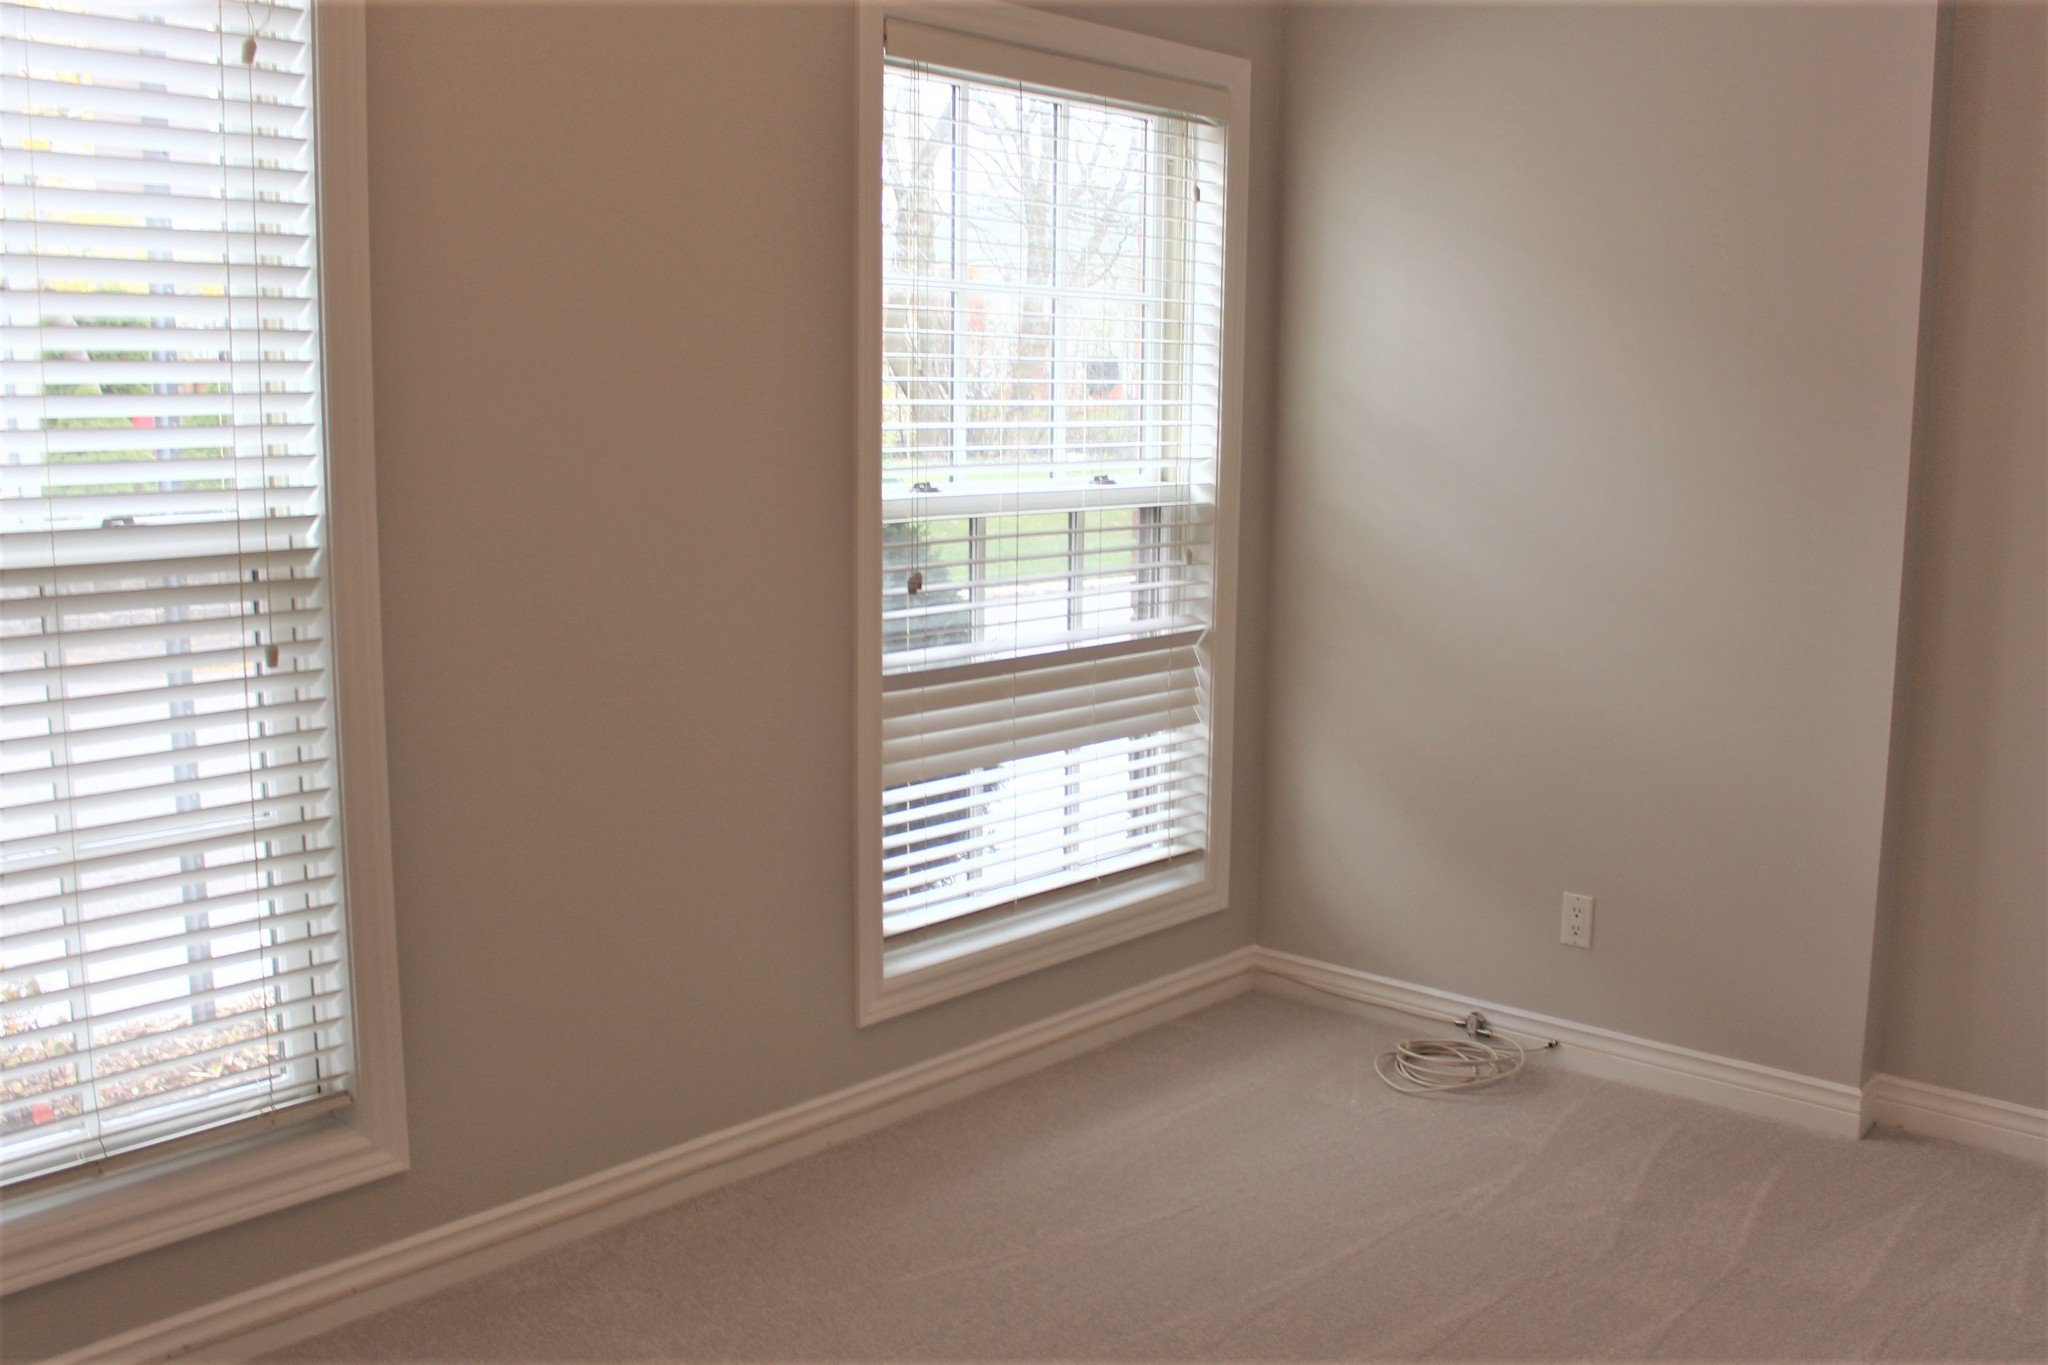 Photo 4: Photos: 102 Maria's Quay in Cobourg: Residential Attached for sale : MLS®# 230864